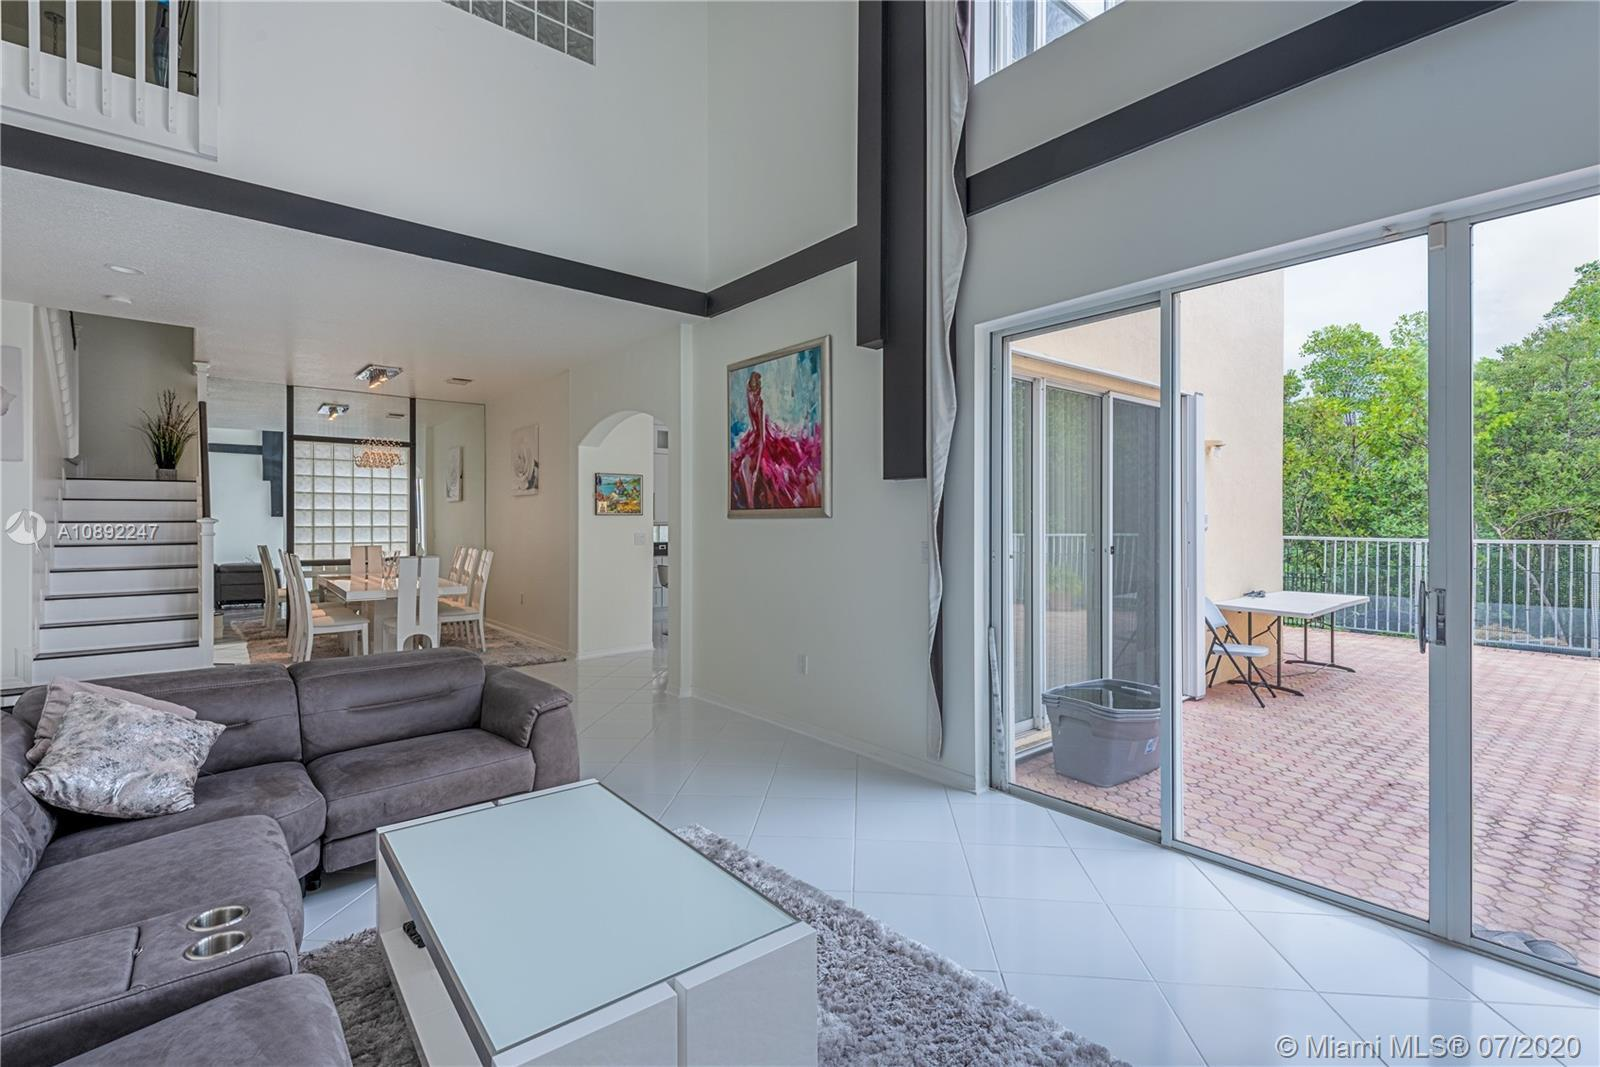 Here you have an absolutely beautiful 2 story home located in the prestigious, West Lake Village. He